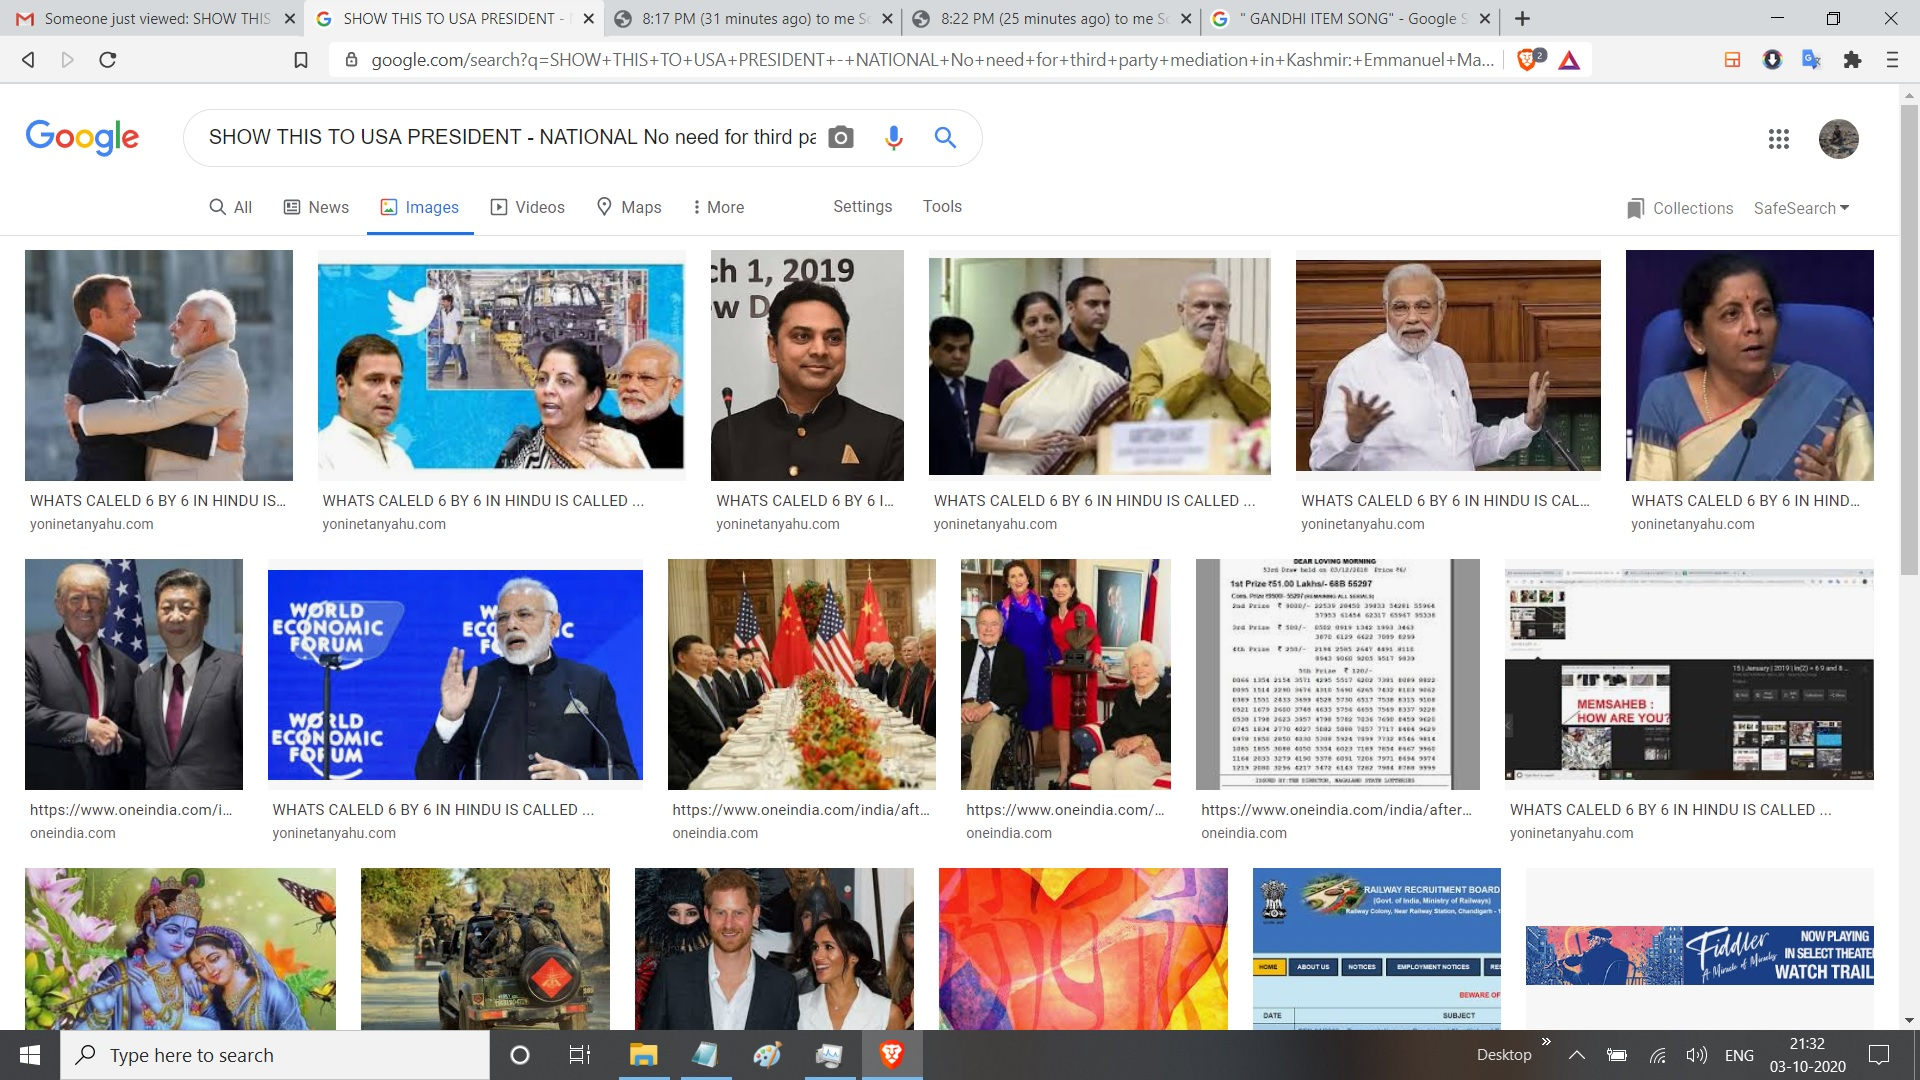 SHOW THIS TO USA PRESIDENT - NATIONAL No need for third party mediation in Kashmir: Emmanuel Macron Suhasini Haidar NEW DELHI, AUGUST 22, 2019 22:45 IST UPDATED: AUGUST 23, 2019 01:22 IST SHARE ARTICLE 20 PRINT A A A French President Emmanuel Macron hugs Prime Minister Narendra Modi as he welcomes him before their meeting at the Chateau of Chantilly, near Paris on August 22, 2019. French President Emmanuel Macron hugs Prime Minister Narendra Modi as he welcomes him before their meeting at the Chateau of Chantilly, near Paris on August 22, 2019.   Photo Credit: AFP MORE-IN Narendra Modi Prime Minister Narendra Modi India to receive first Rafale fighter jet next month: Prime Minister Modi Prime Minister Narendra Modi and French President Emmanuel Macron on Thursday discussed the governments move to suspend Article 370 in Jammu and Kashmir and split the State into two Union Territories. Briefing the media in Chantilly after one-on-one talks that lasted more than 90 minutes, Mr. Macron said France would support any policy that would give the region stability, adding that no one should provoke violence there. Prime Minister Modi explained the decisions to me, and said that this is a sovereign issue for India. France believes that issue of Kashmir should be resolved between India and Pakistan and no other party should be involved, Mr Macros said. We would like to support any policy that keeps the situation stable and free from terror. I will be speaking to the Pakistan PM shortly, and would say to him to that this issue must be resolved bilaterally as well, he added. Mr. Macron said at Chantilly, in talks that precede the upcoming G7 summit in Biarritz, where India has been invited as a special guest. The last time India was invited to the group of the worlds biggest economies was in 2005, when then Prime Minister Manmohan Singh had attended the then G8 meet in Scotland. Thanking the French government for its support on security and countering cross-border terror, Mr Modi